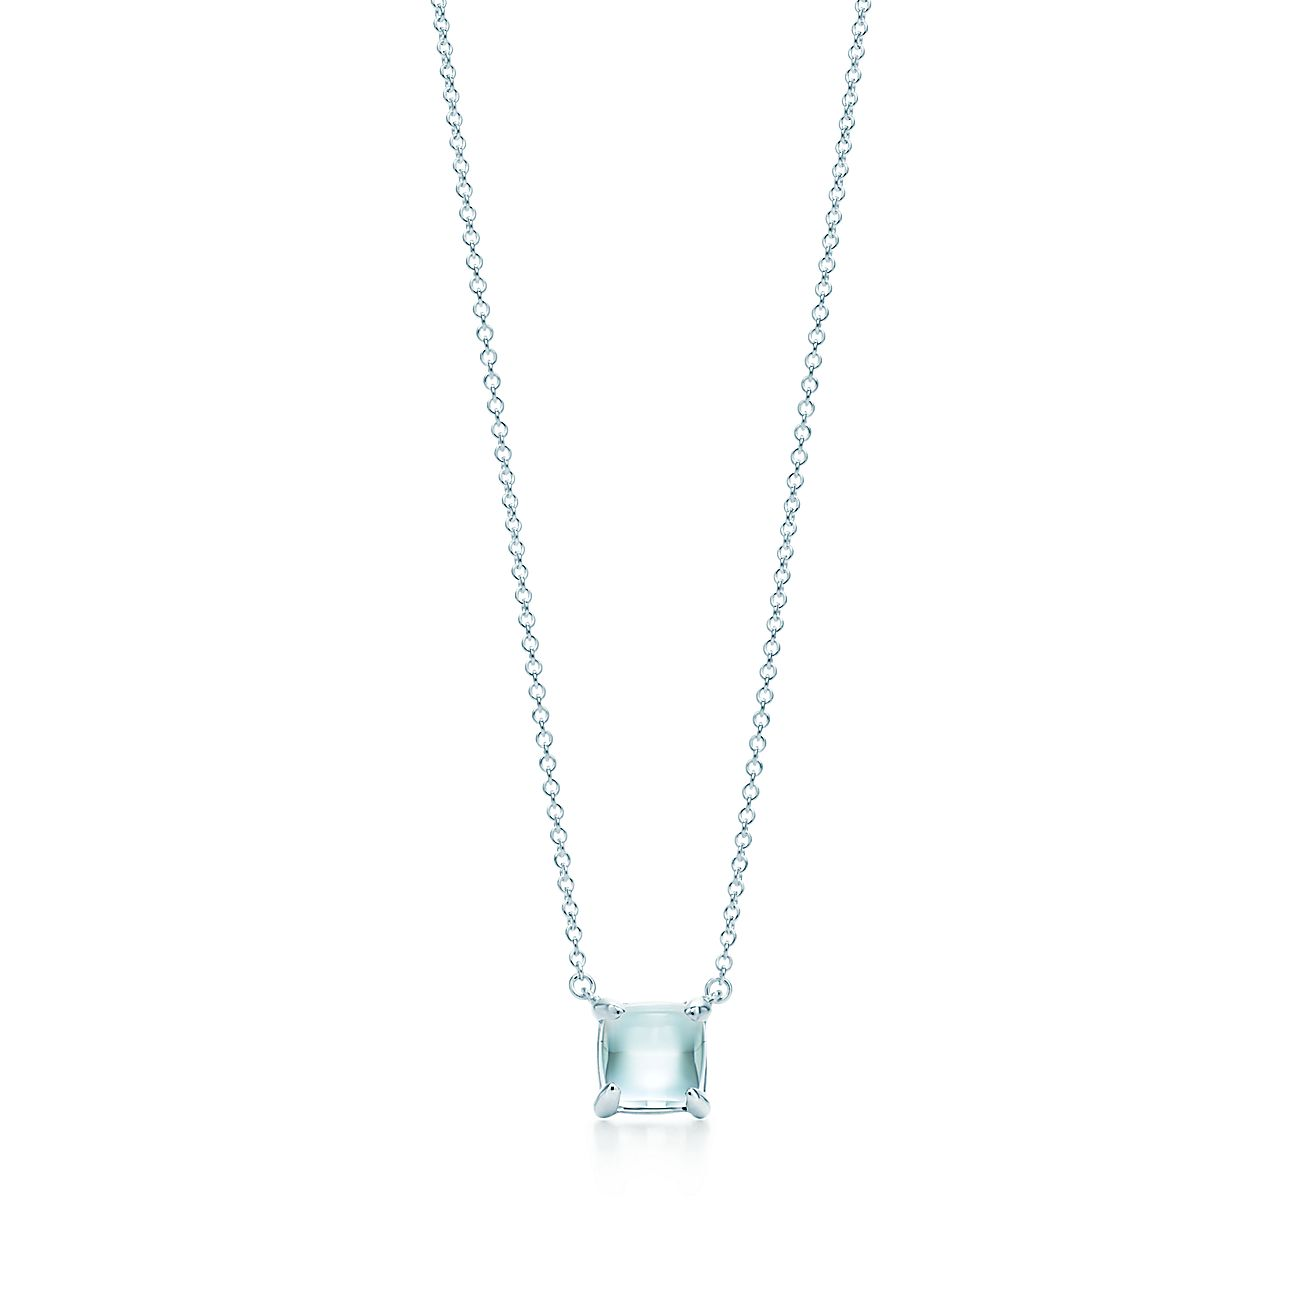 Paloma's Sugar Stacks:Pendant